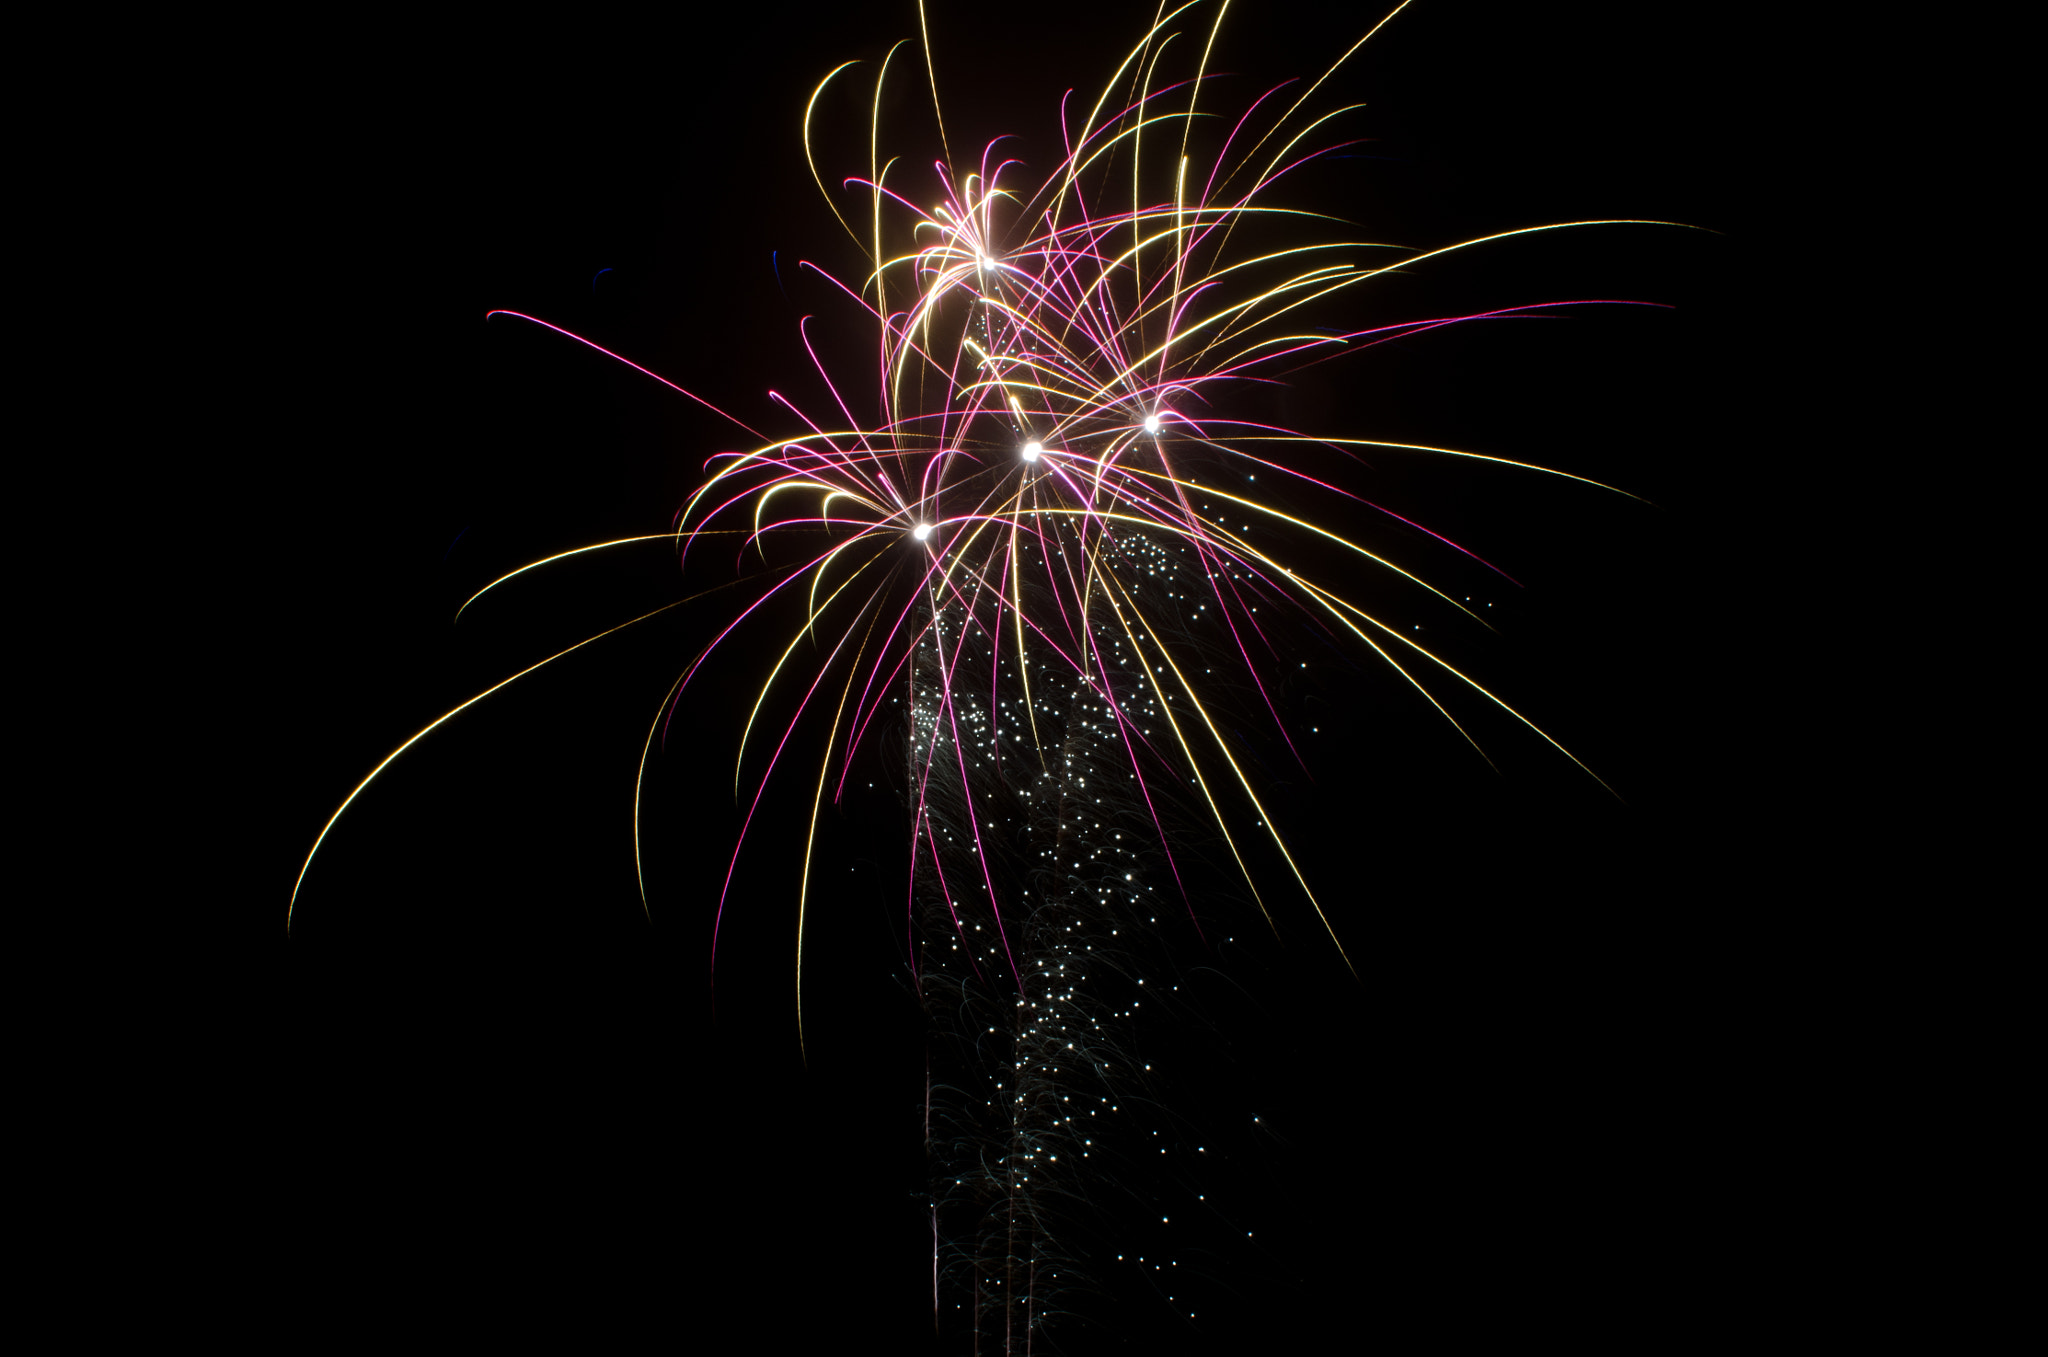 Photograph Pink Fireworks by Martin Bjørnskov on 500px